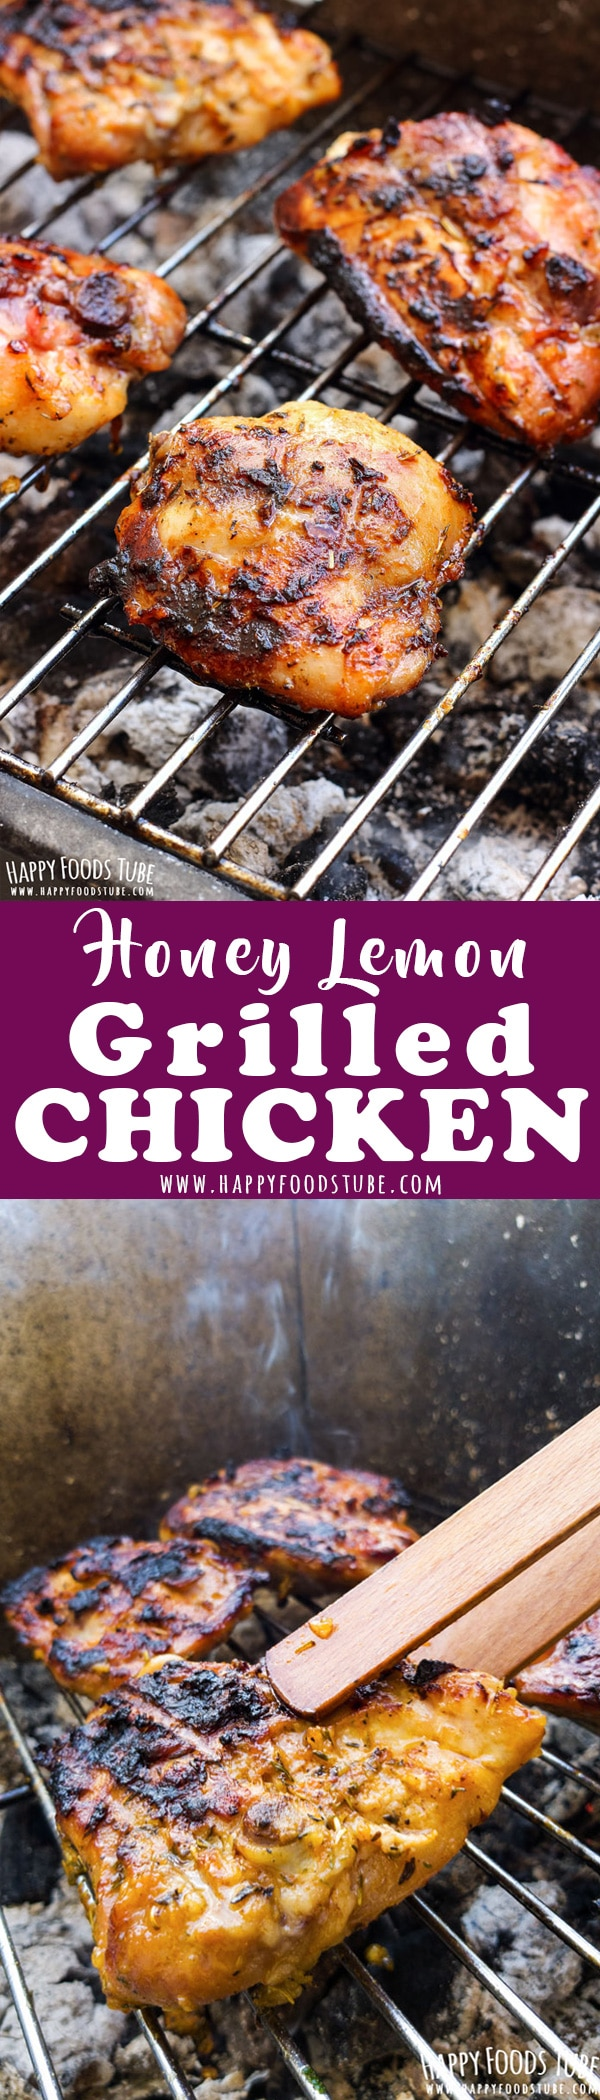 Easy honey lemon grilled chicken recipe. Chicken thighs are flavored with homemade grill seasoning, marinated in honey, lemon and garlic then grilled to perfection. How to make honey grilled chicken. #grilled #chicken #thighs #bbq #barbecue #lemon #honey #recipe